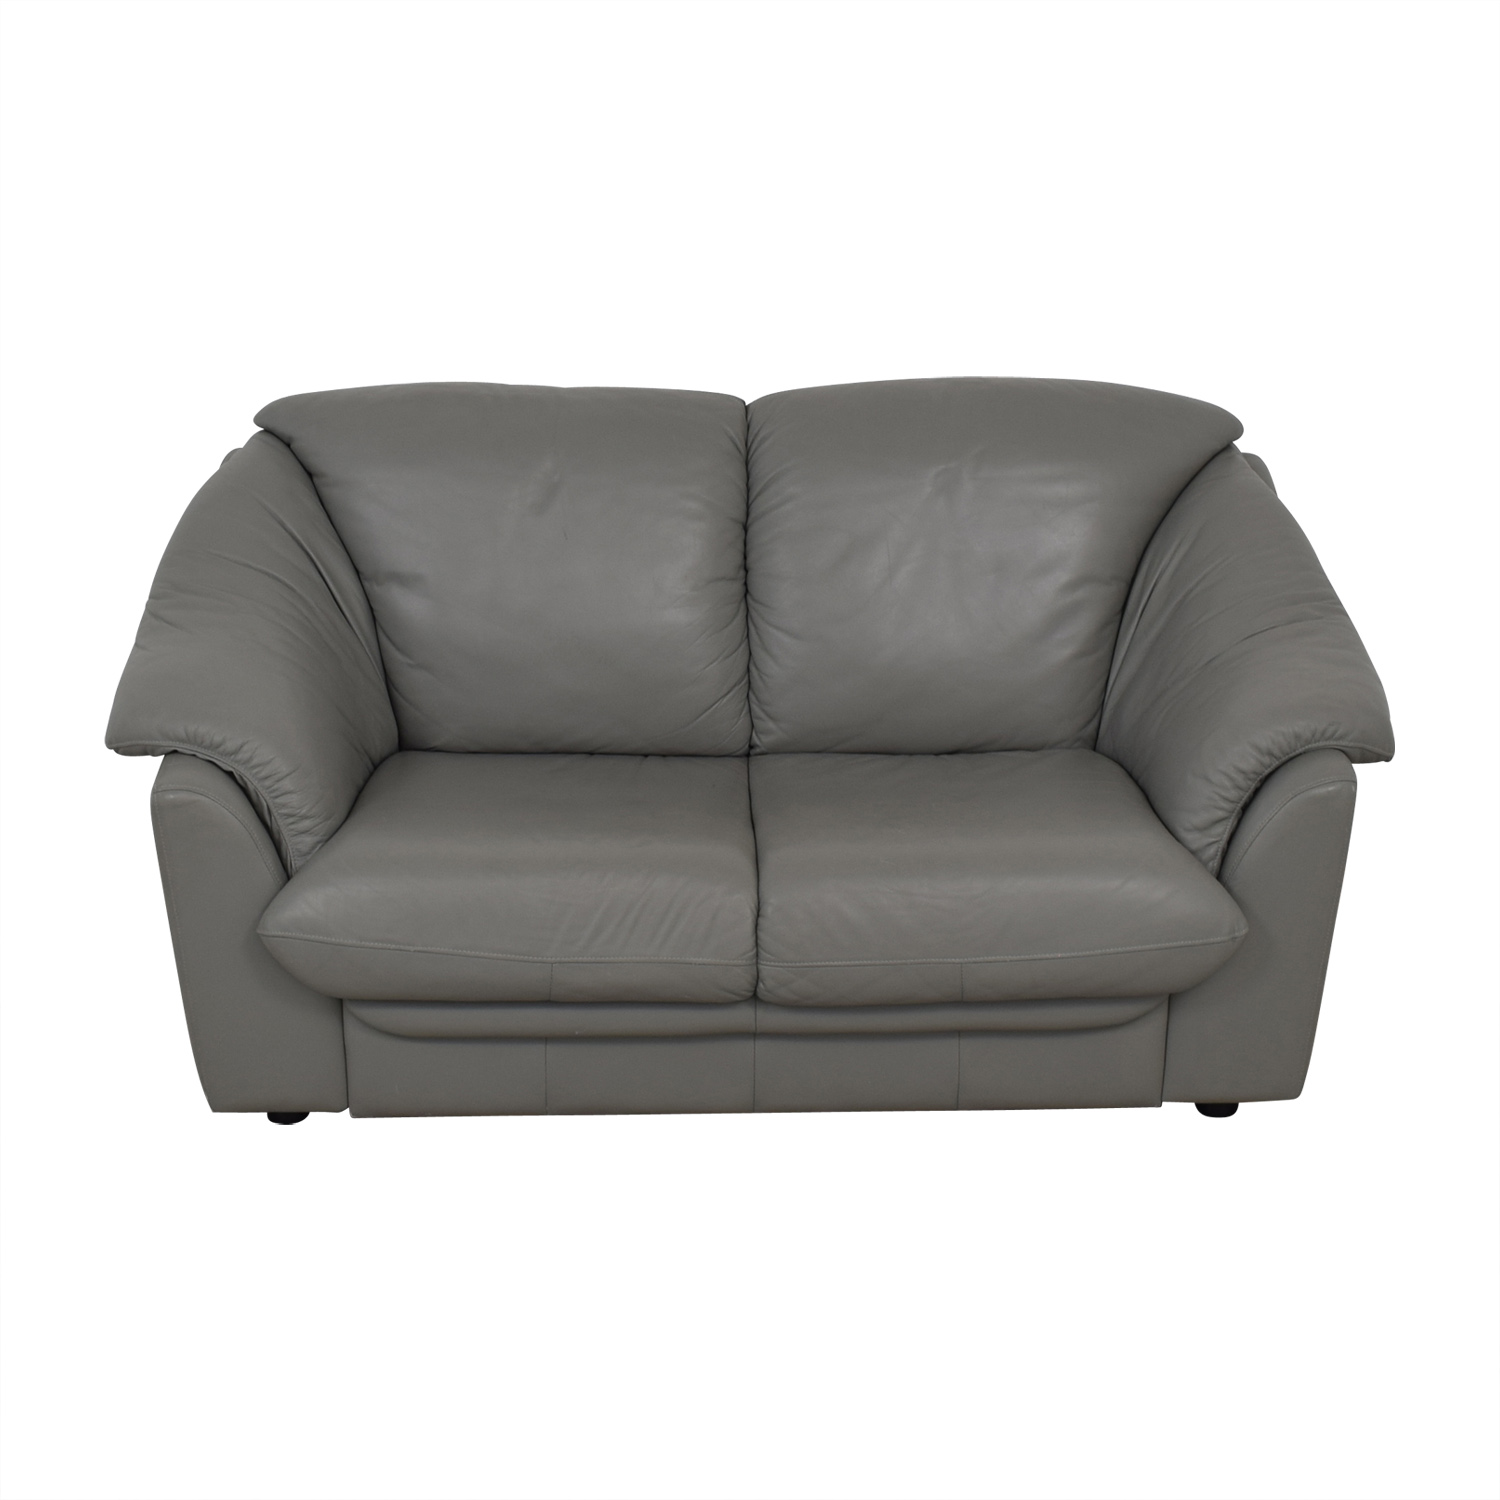 buy  Italian Grey Two-Cushion Loveseat online